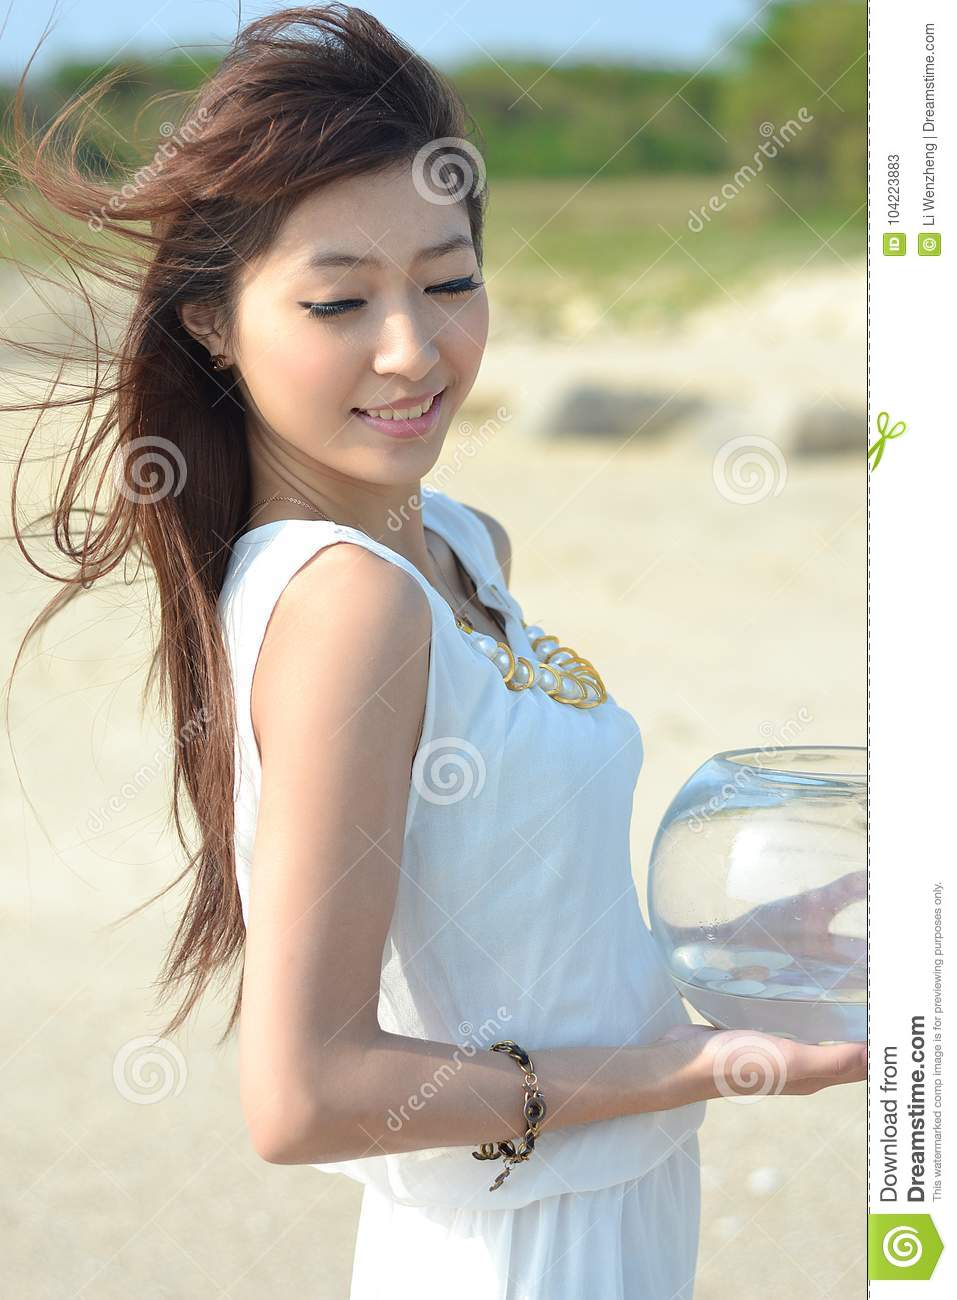 Beautiful Asian girl in a white dress at the beach, the sea breeze blowing  hair, beautiful young, pure